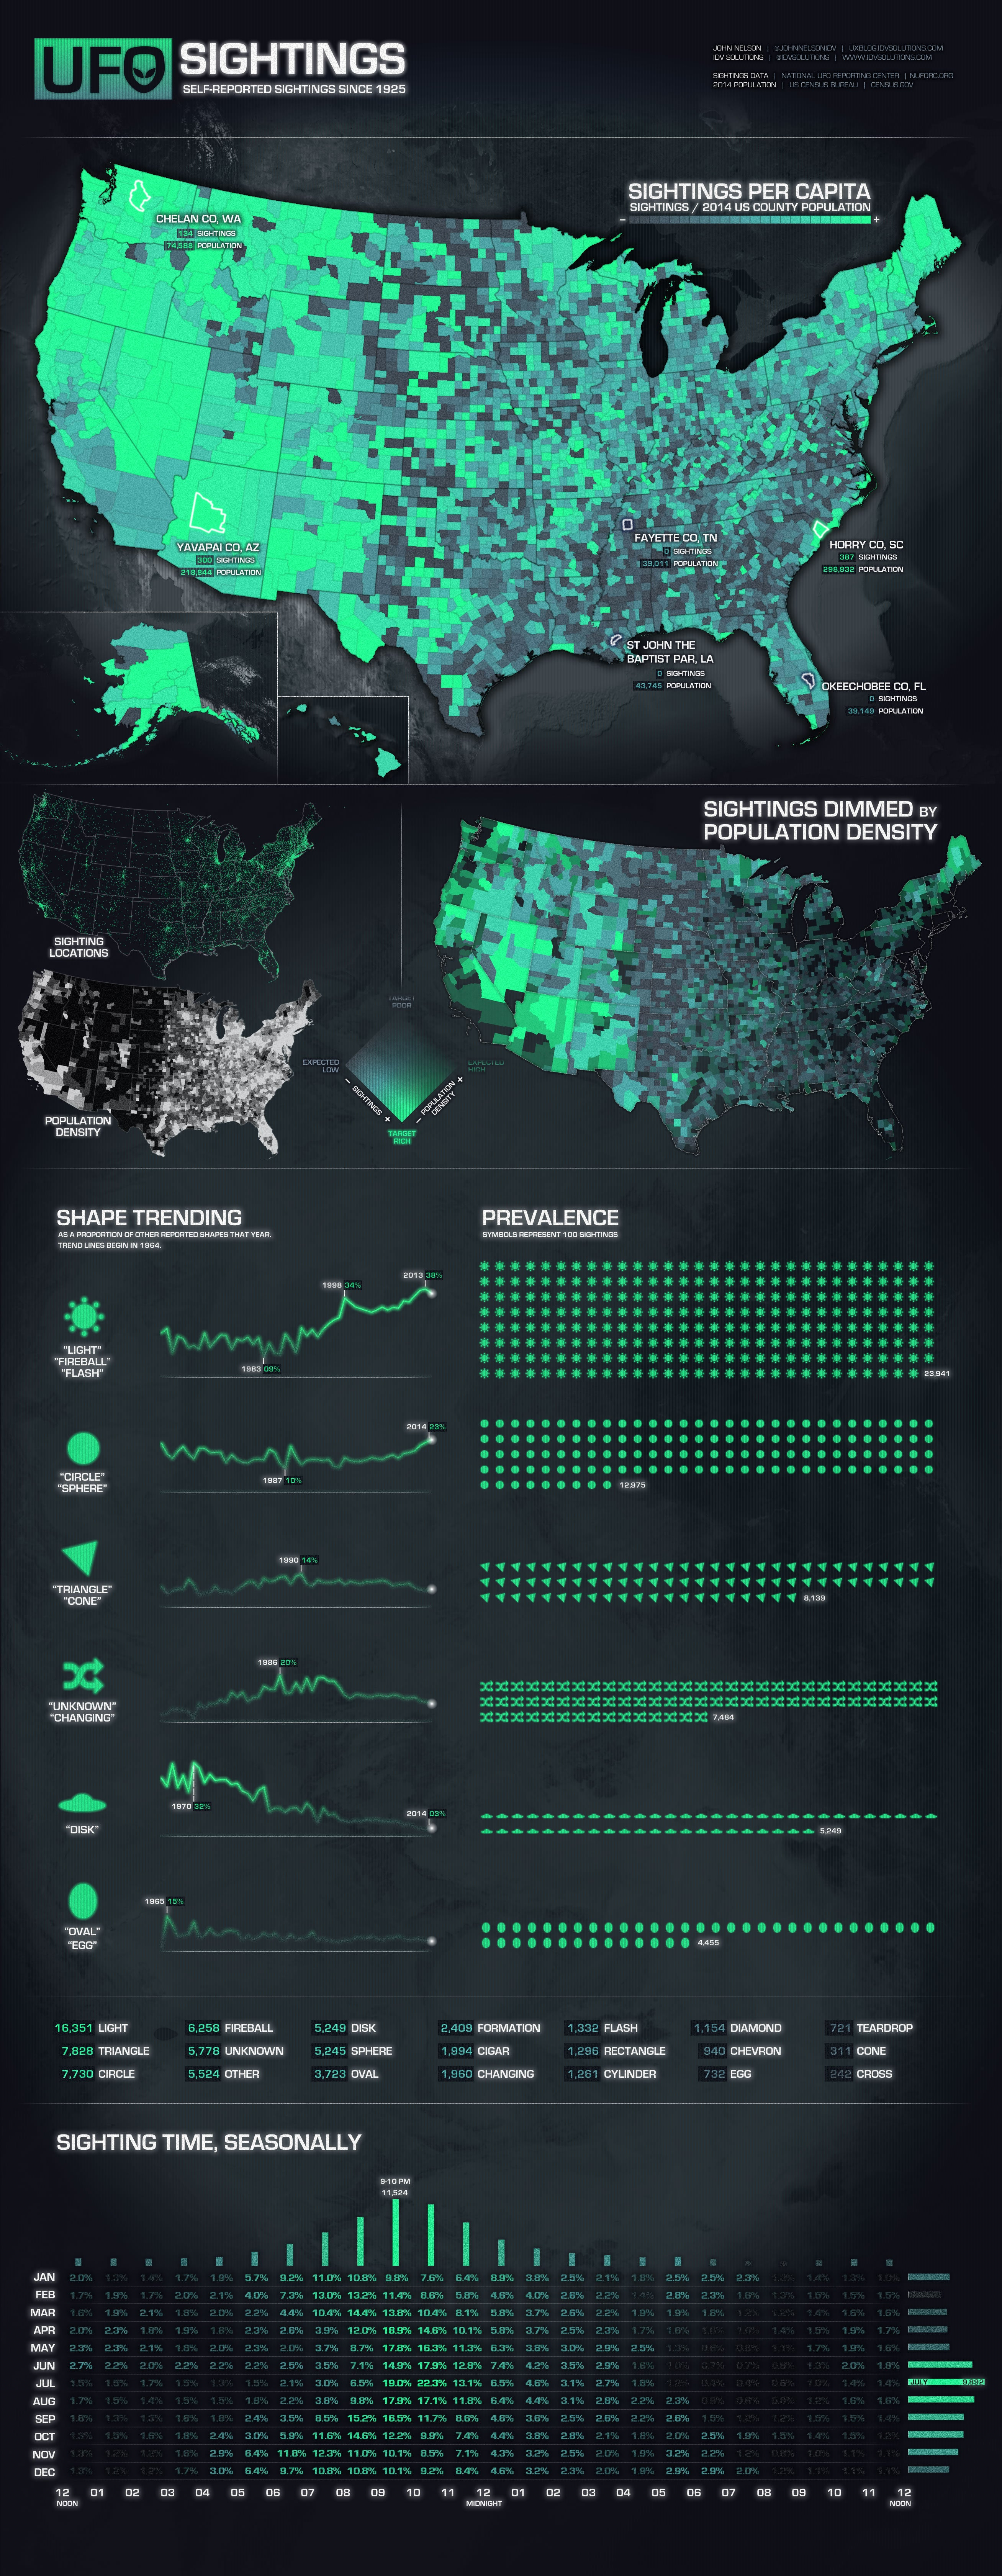 Map shows where UFO sightings are seen the most in the USA